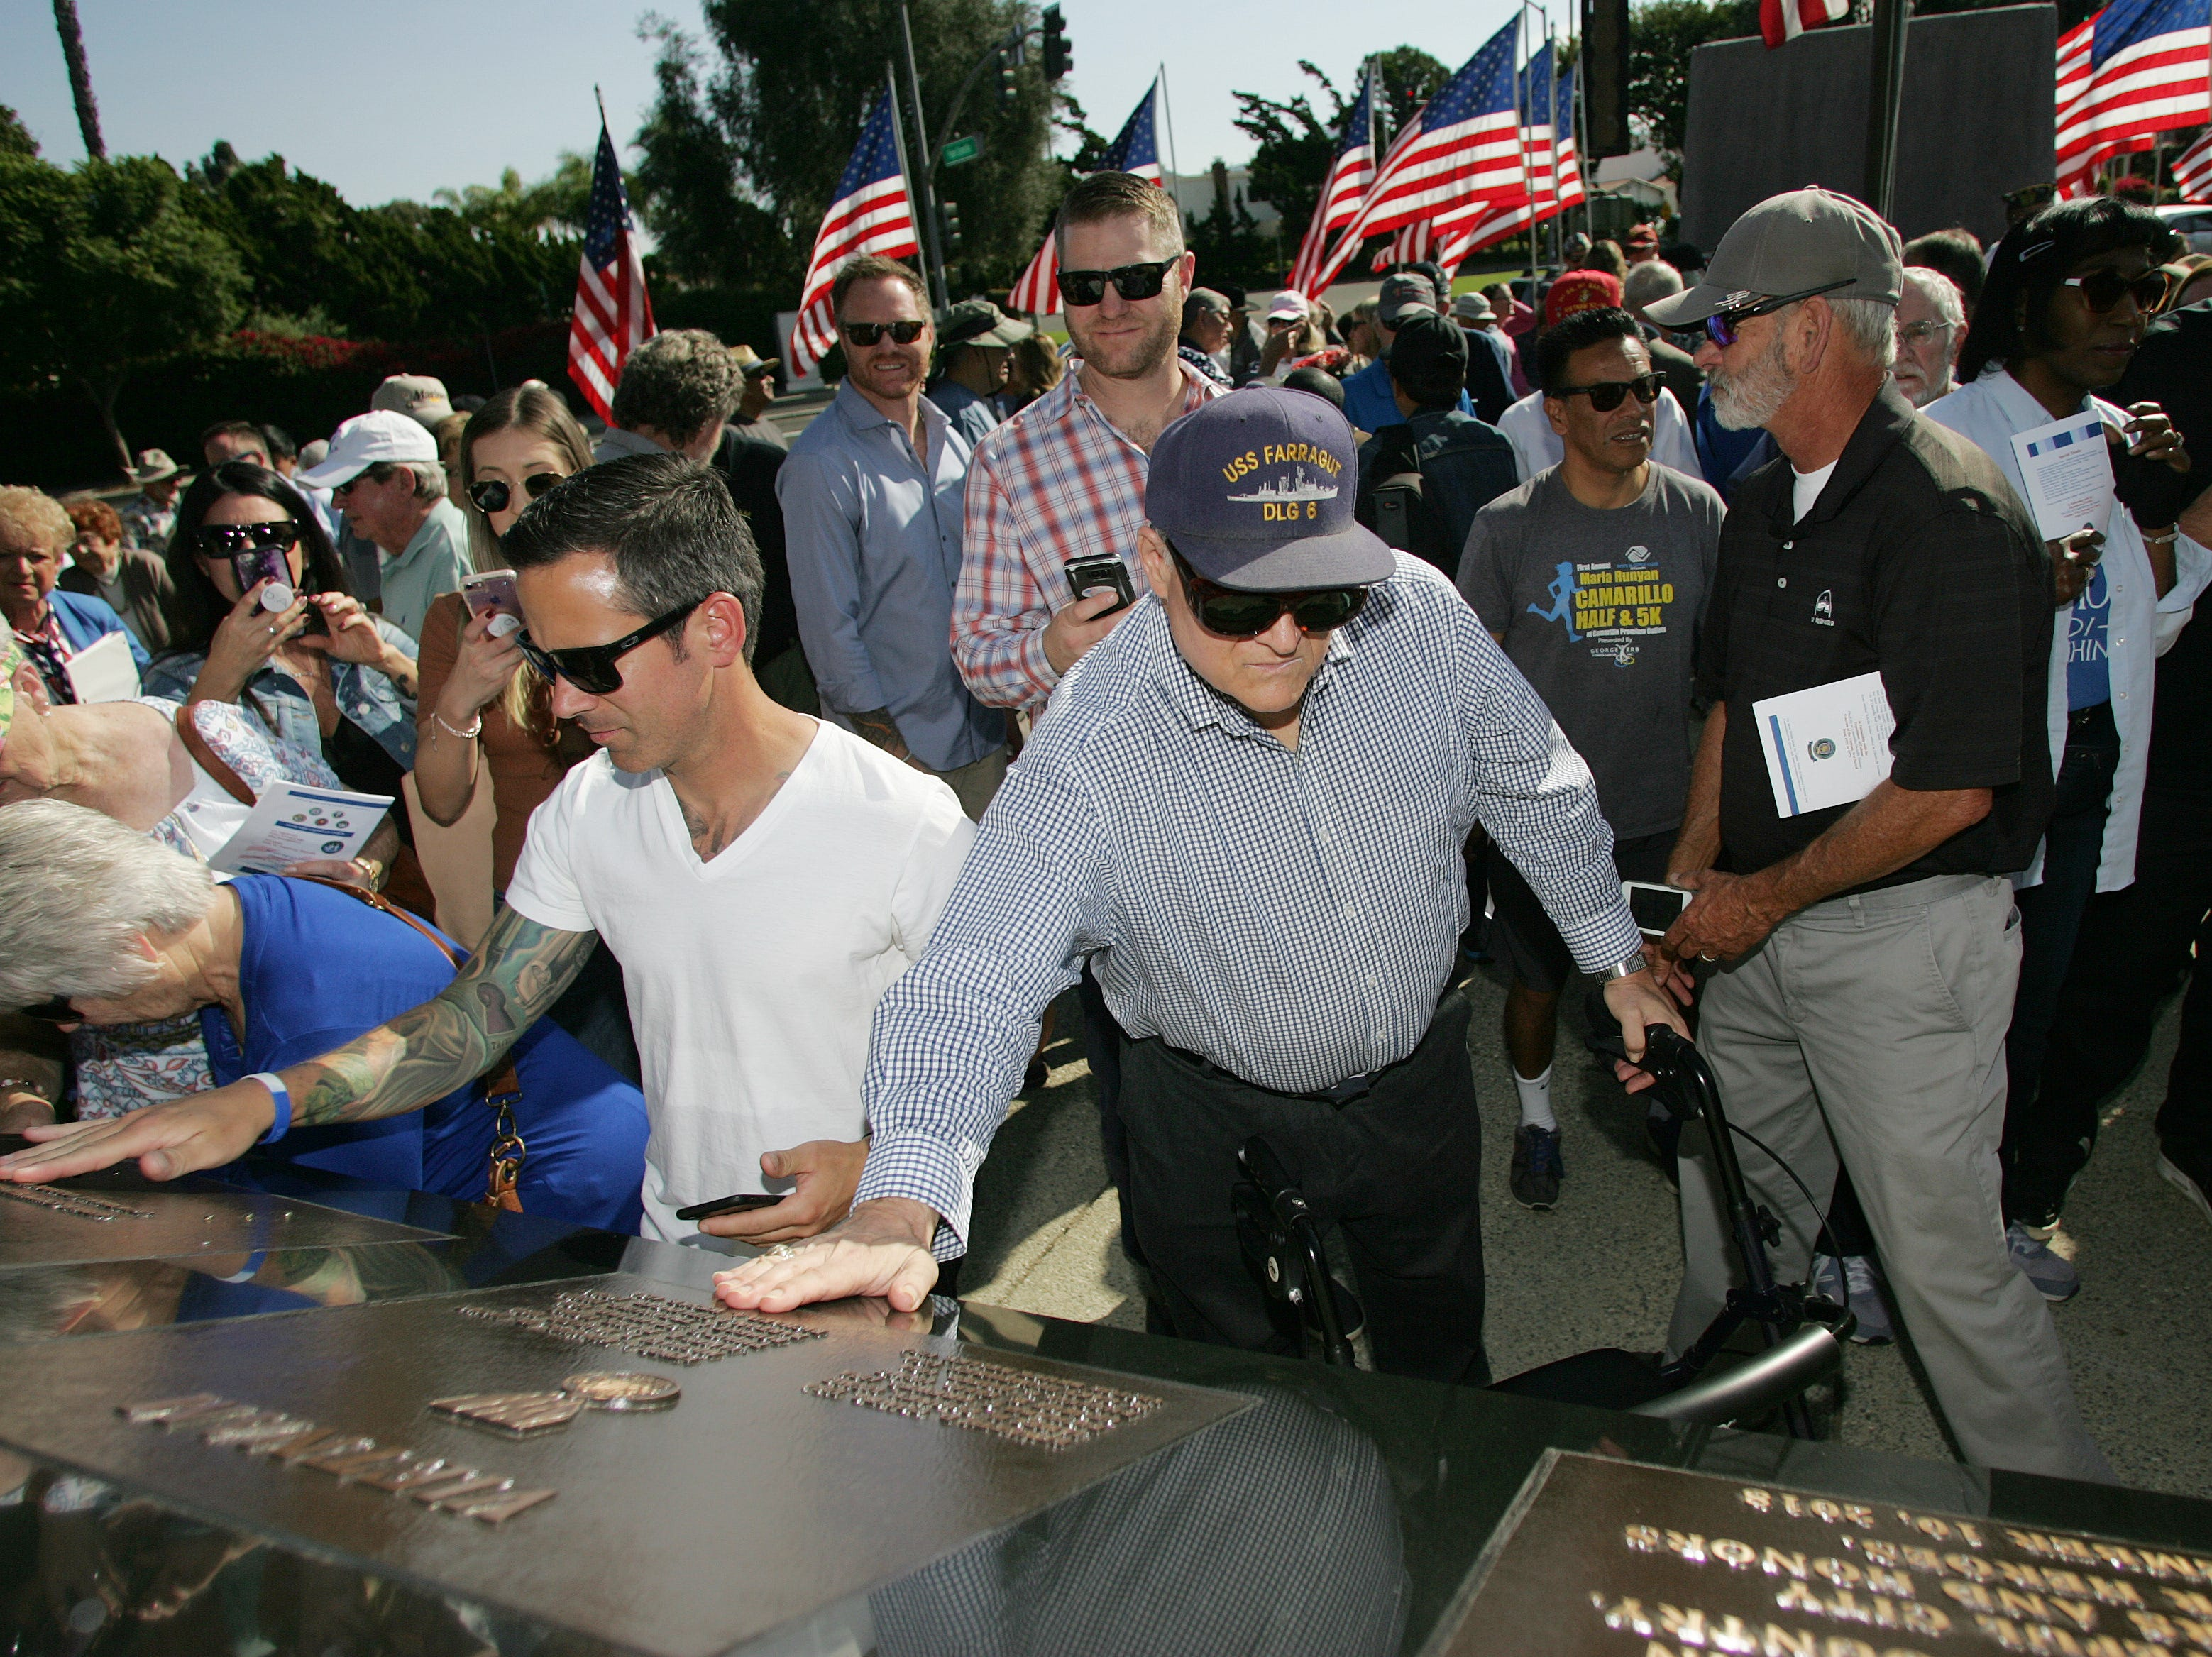 Navy veteran David Minkin, who served in Vietnam, looks at the new veterans monument as Jeff Golden, left, touches the name of his brother Jonathon Golden, an Air Force captain who died in Afghanistan in 2015. The City of Camarillo and American Legion Post 741 hosted a Veterans Memorial Monument dedication ceremony at Constitution Park in Camarillo.